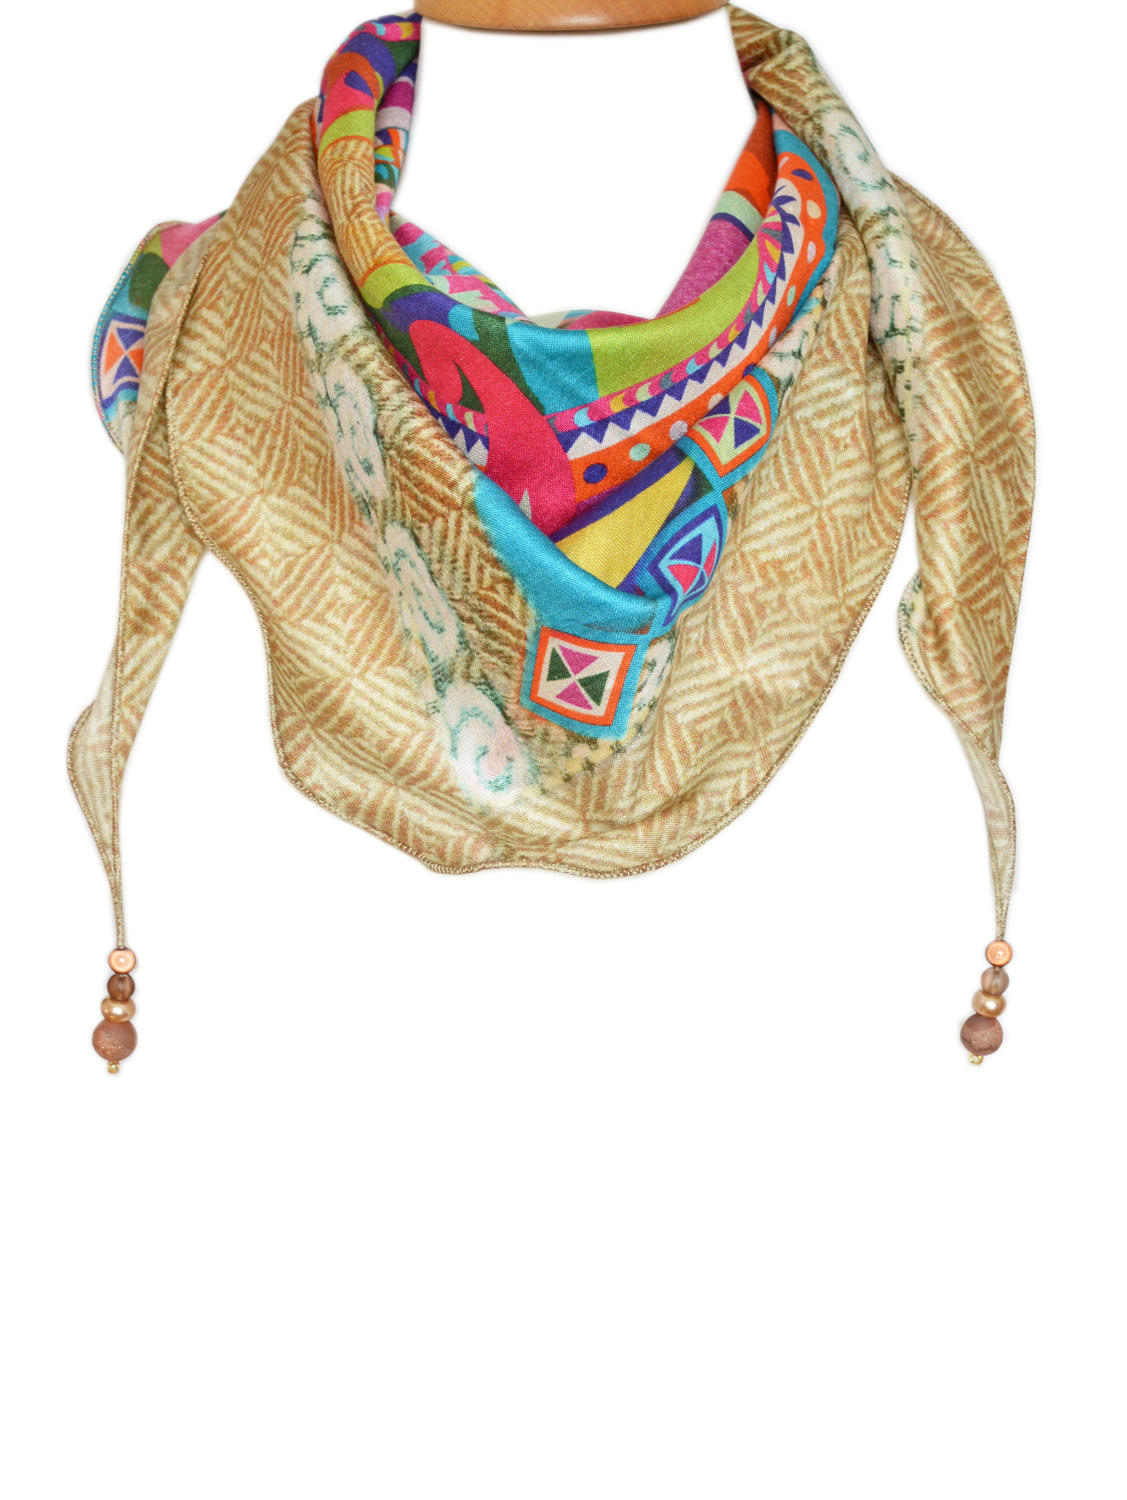 Boxed Multi Crosshatch Silk Triangle Scarf with beads